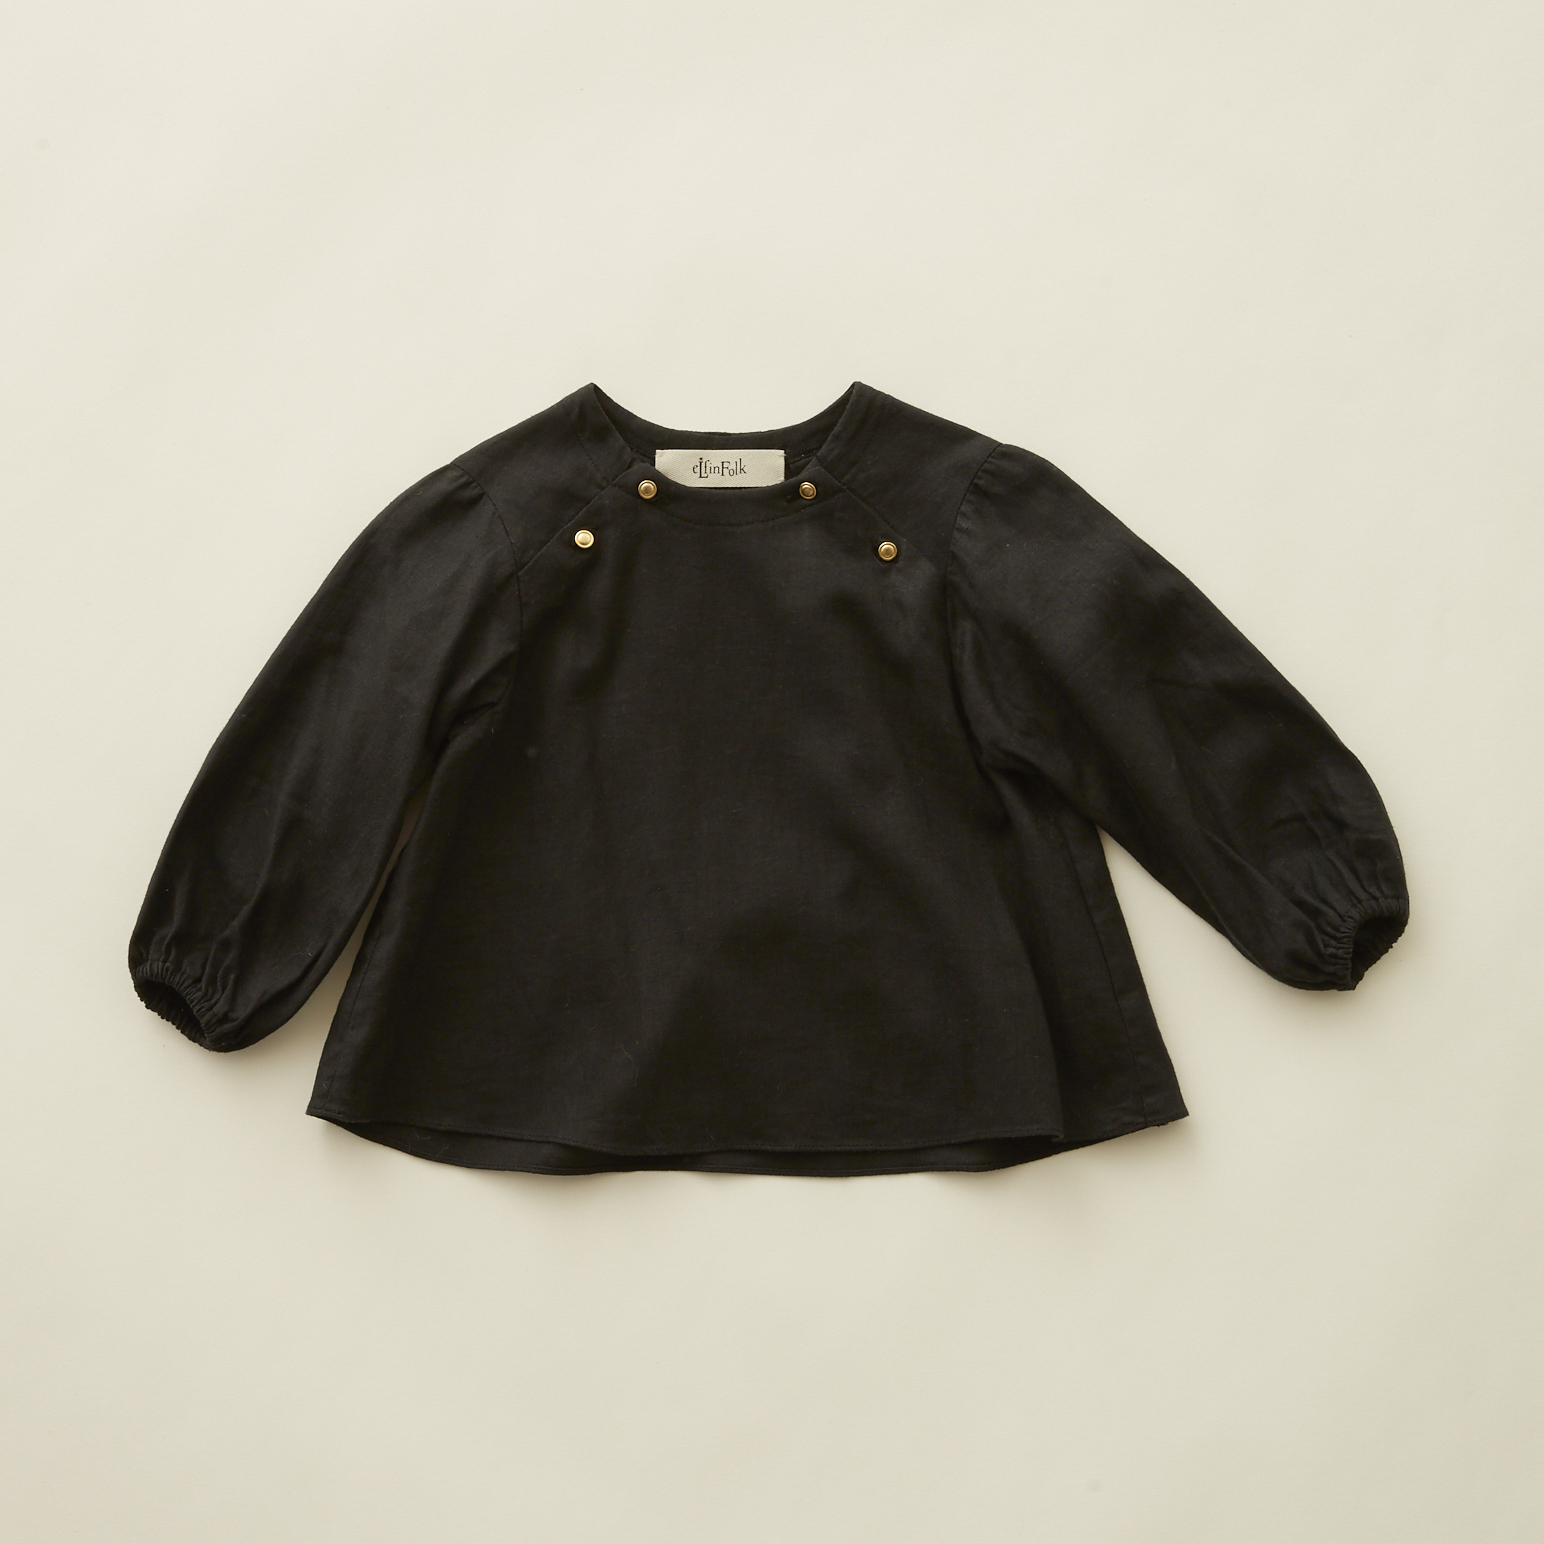 《eLfinFolk 2020AW》C/L washer  baby blouse / black / 80-100cm